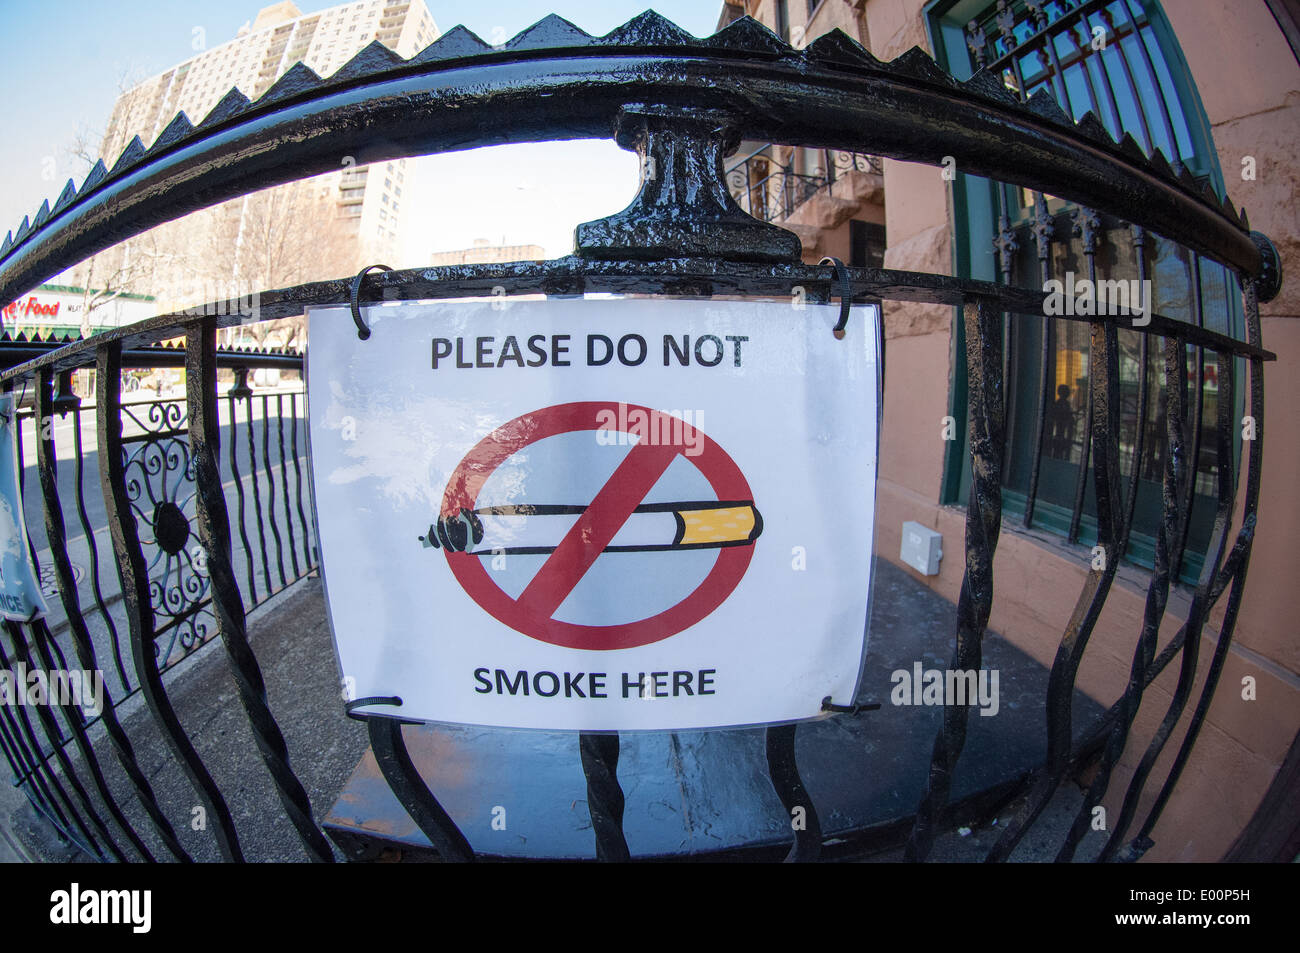 A No Smoking sign on a fence in the Clinton Hill neighborhood in Brooklyn in New York - Stock Image